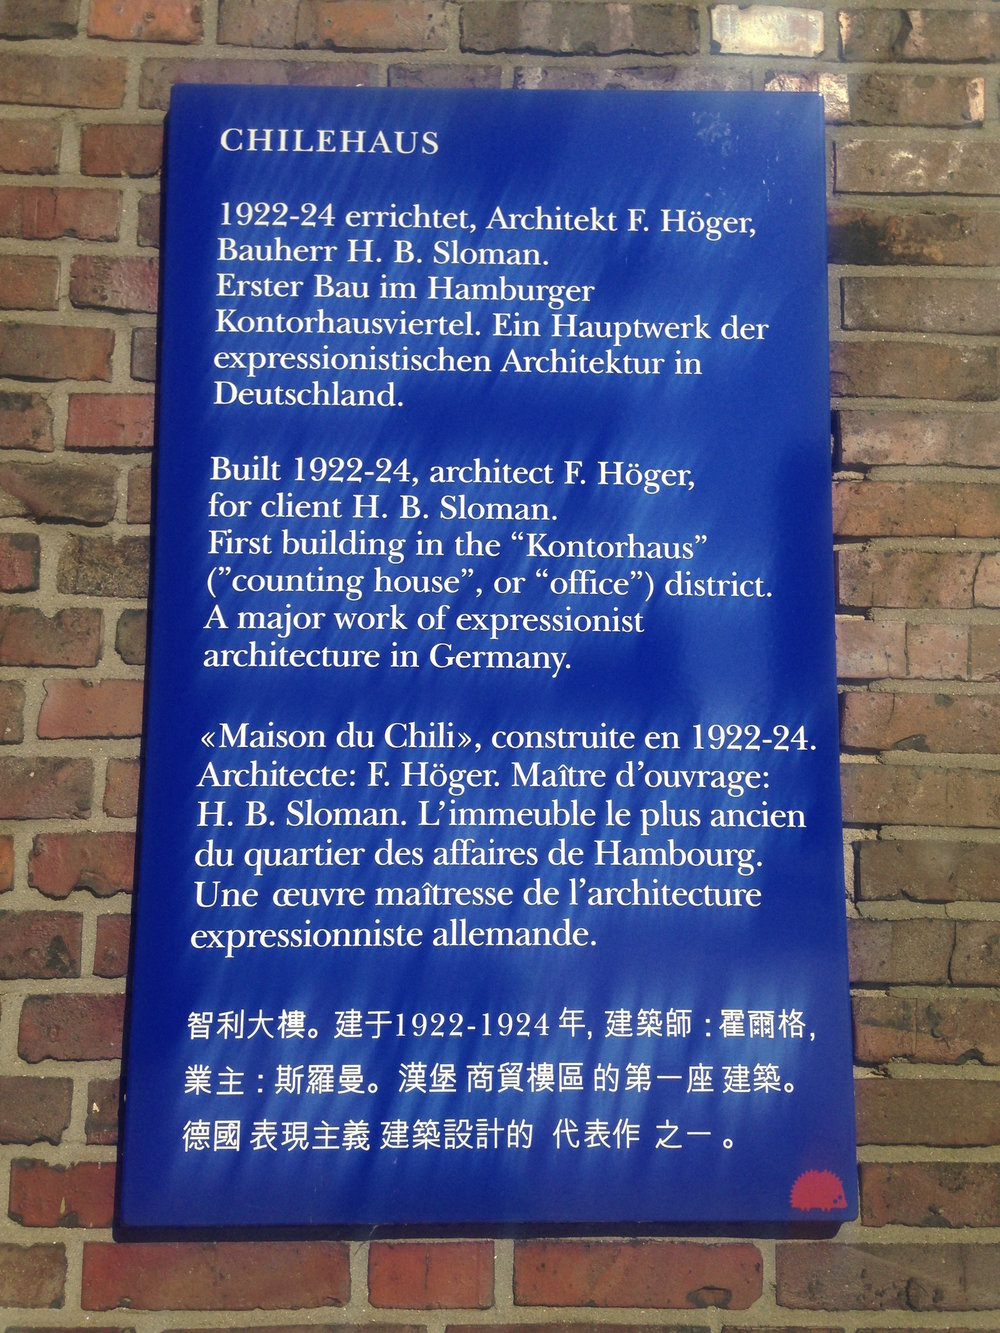 chilehaus-historic-information.jpg